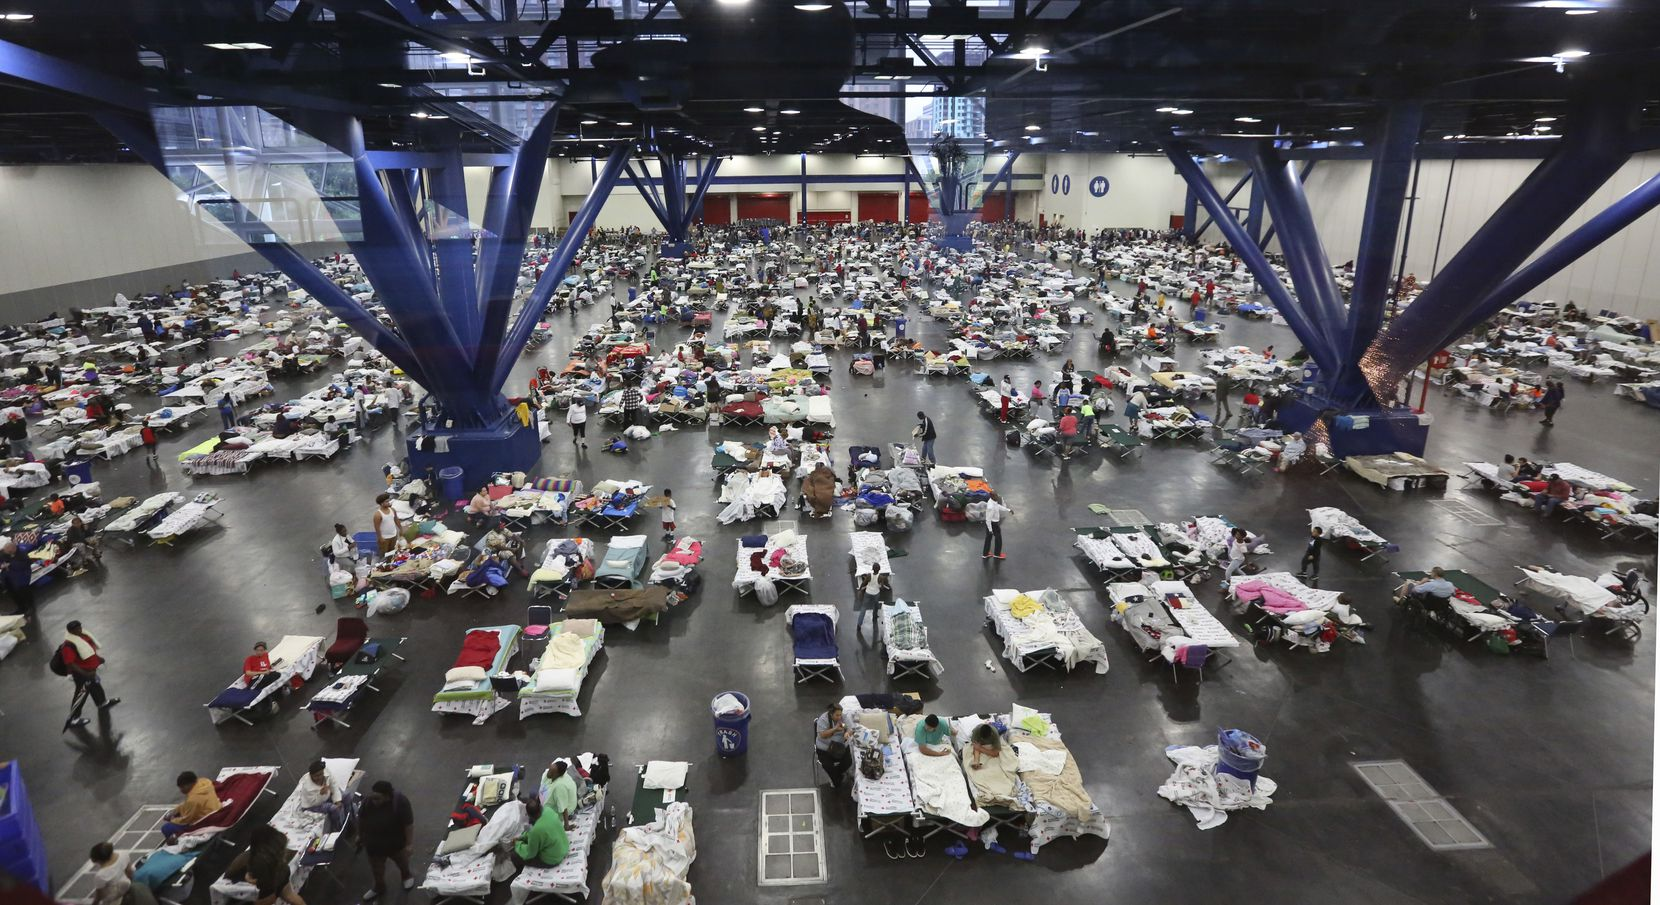 Evacuees escaping the floodwaters from Tropical Storm Harvey rest at the George R. Brown Convention Center that has been set up as a shelter in Houston, Texas, Tuesday, Aug. 29, 2017.